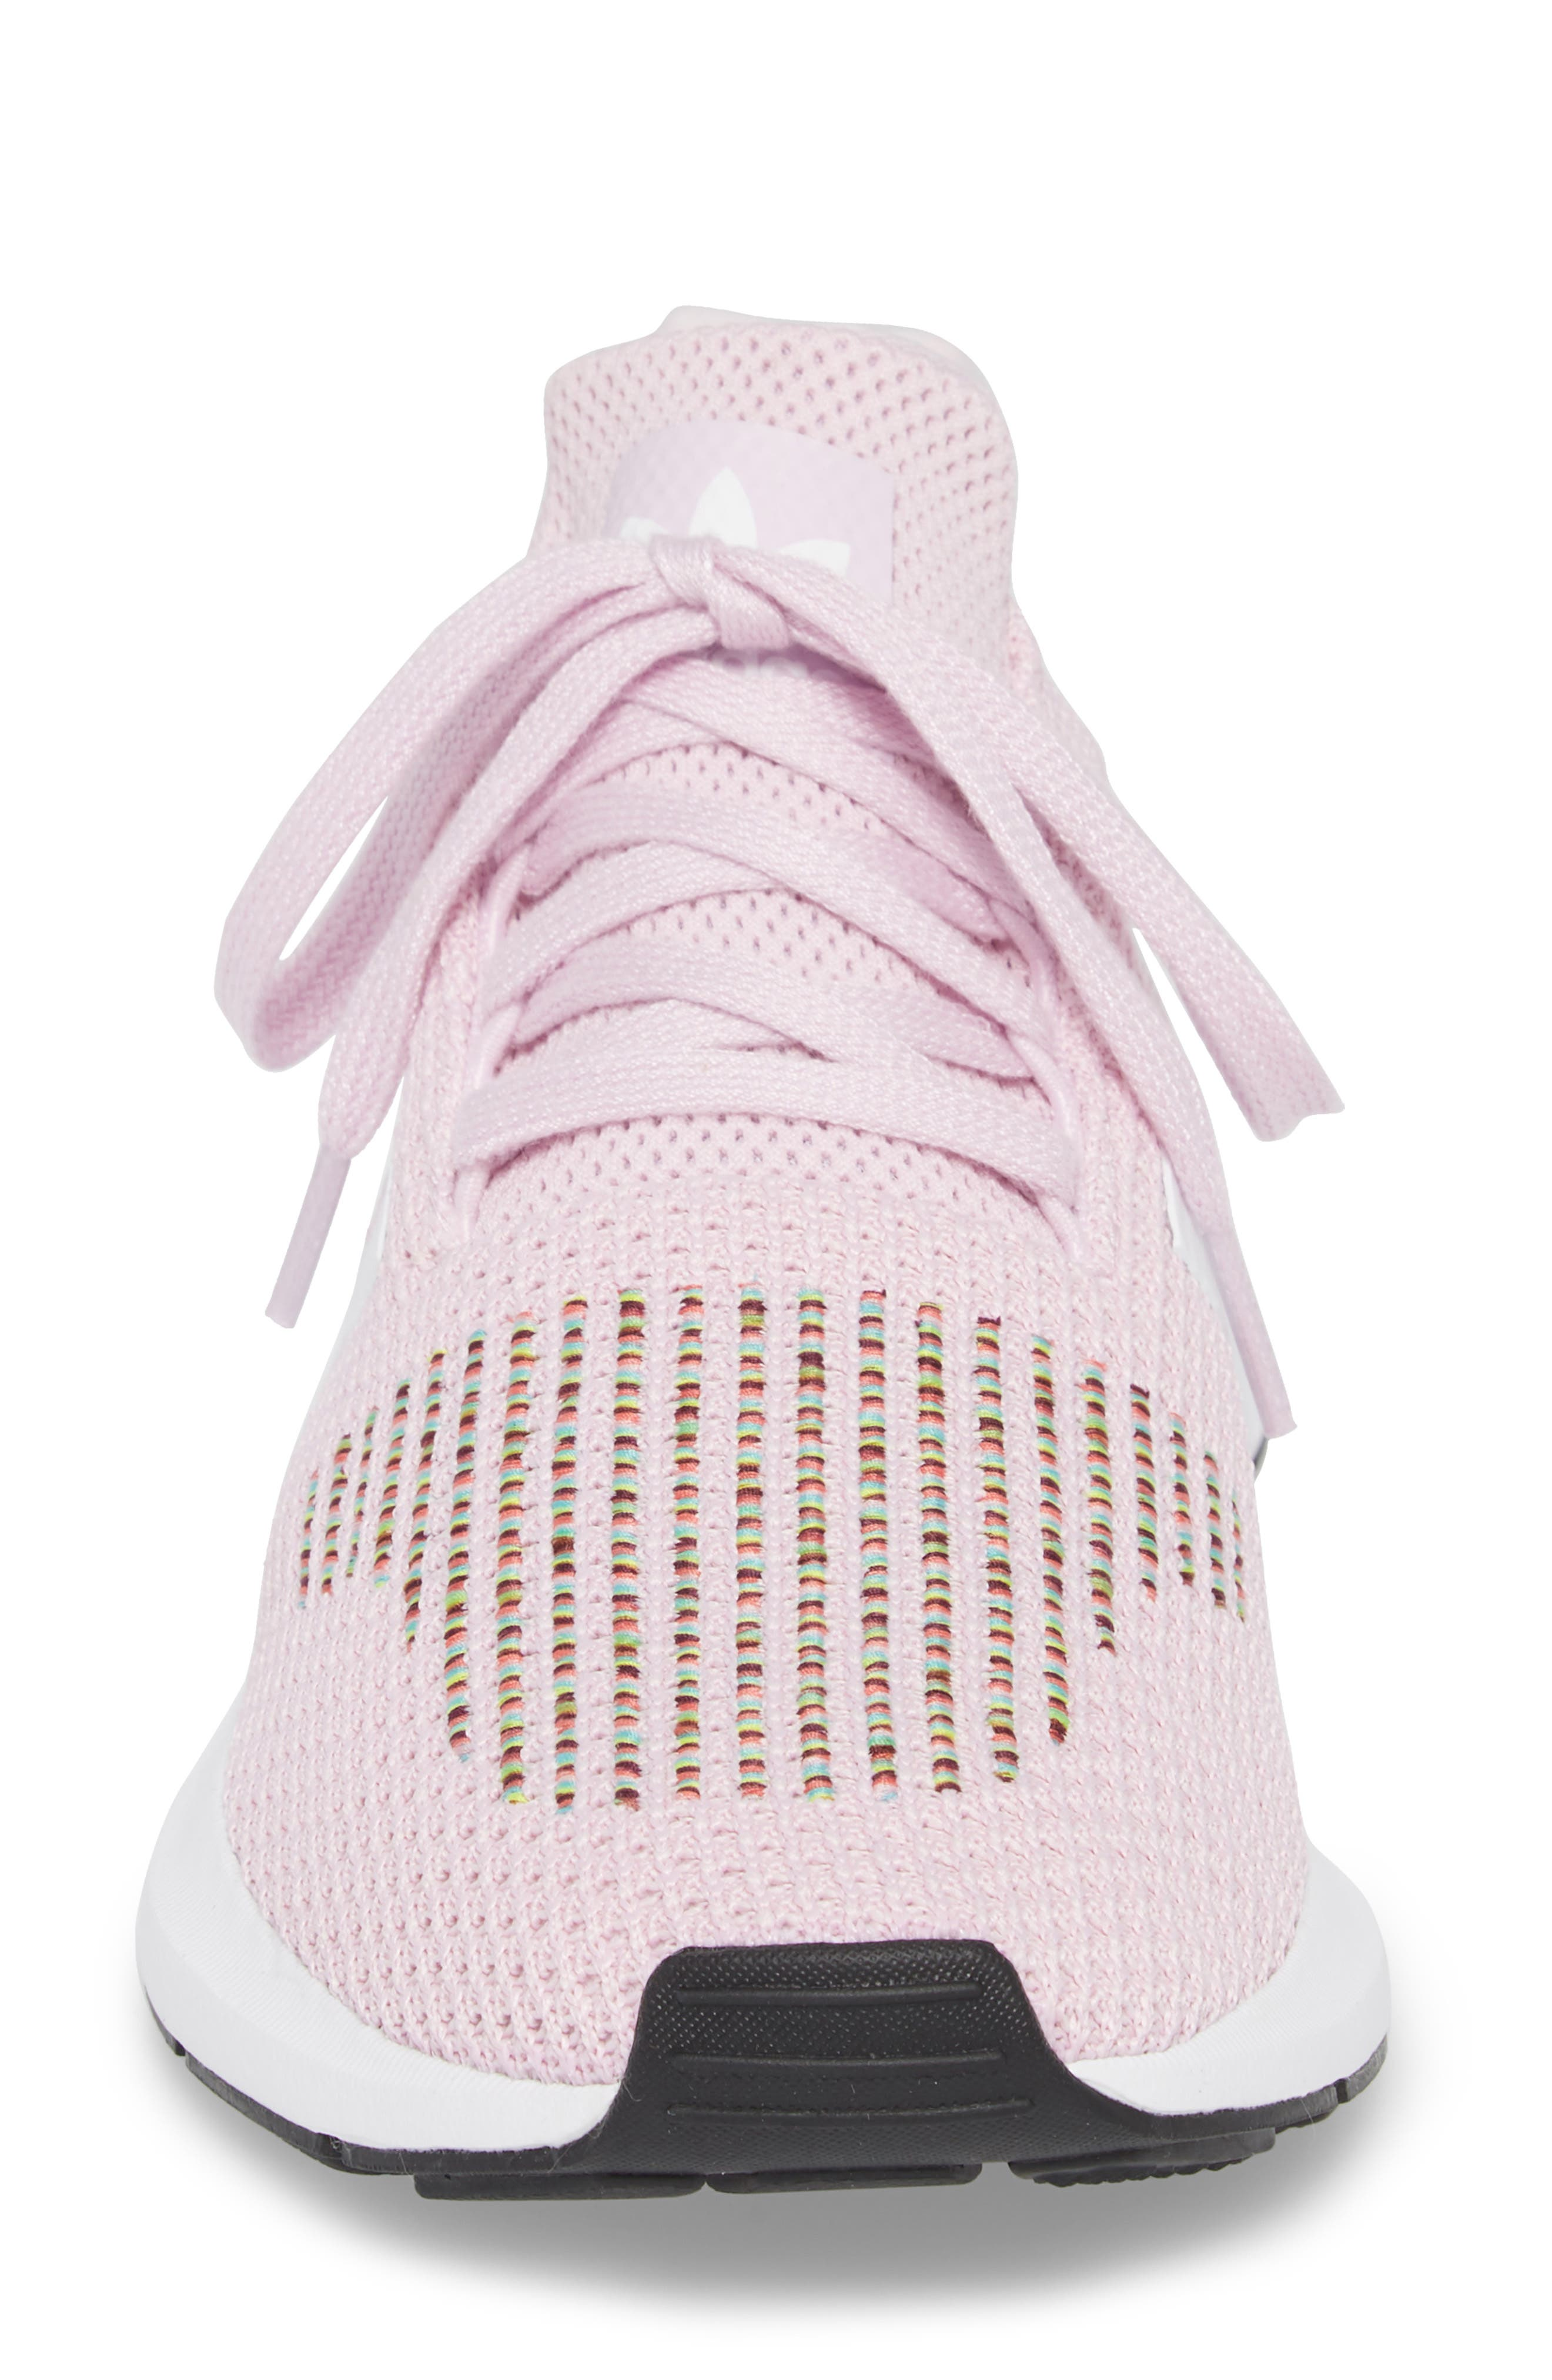 Swift Run Sneaker,                             Alternate thumbnail 4, color,                             Aero Pink/ White/ Core Black